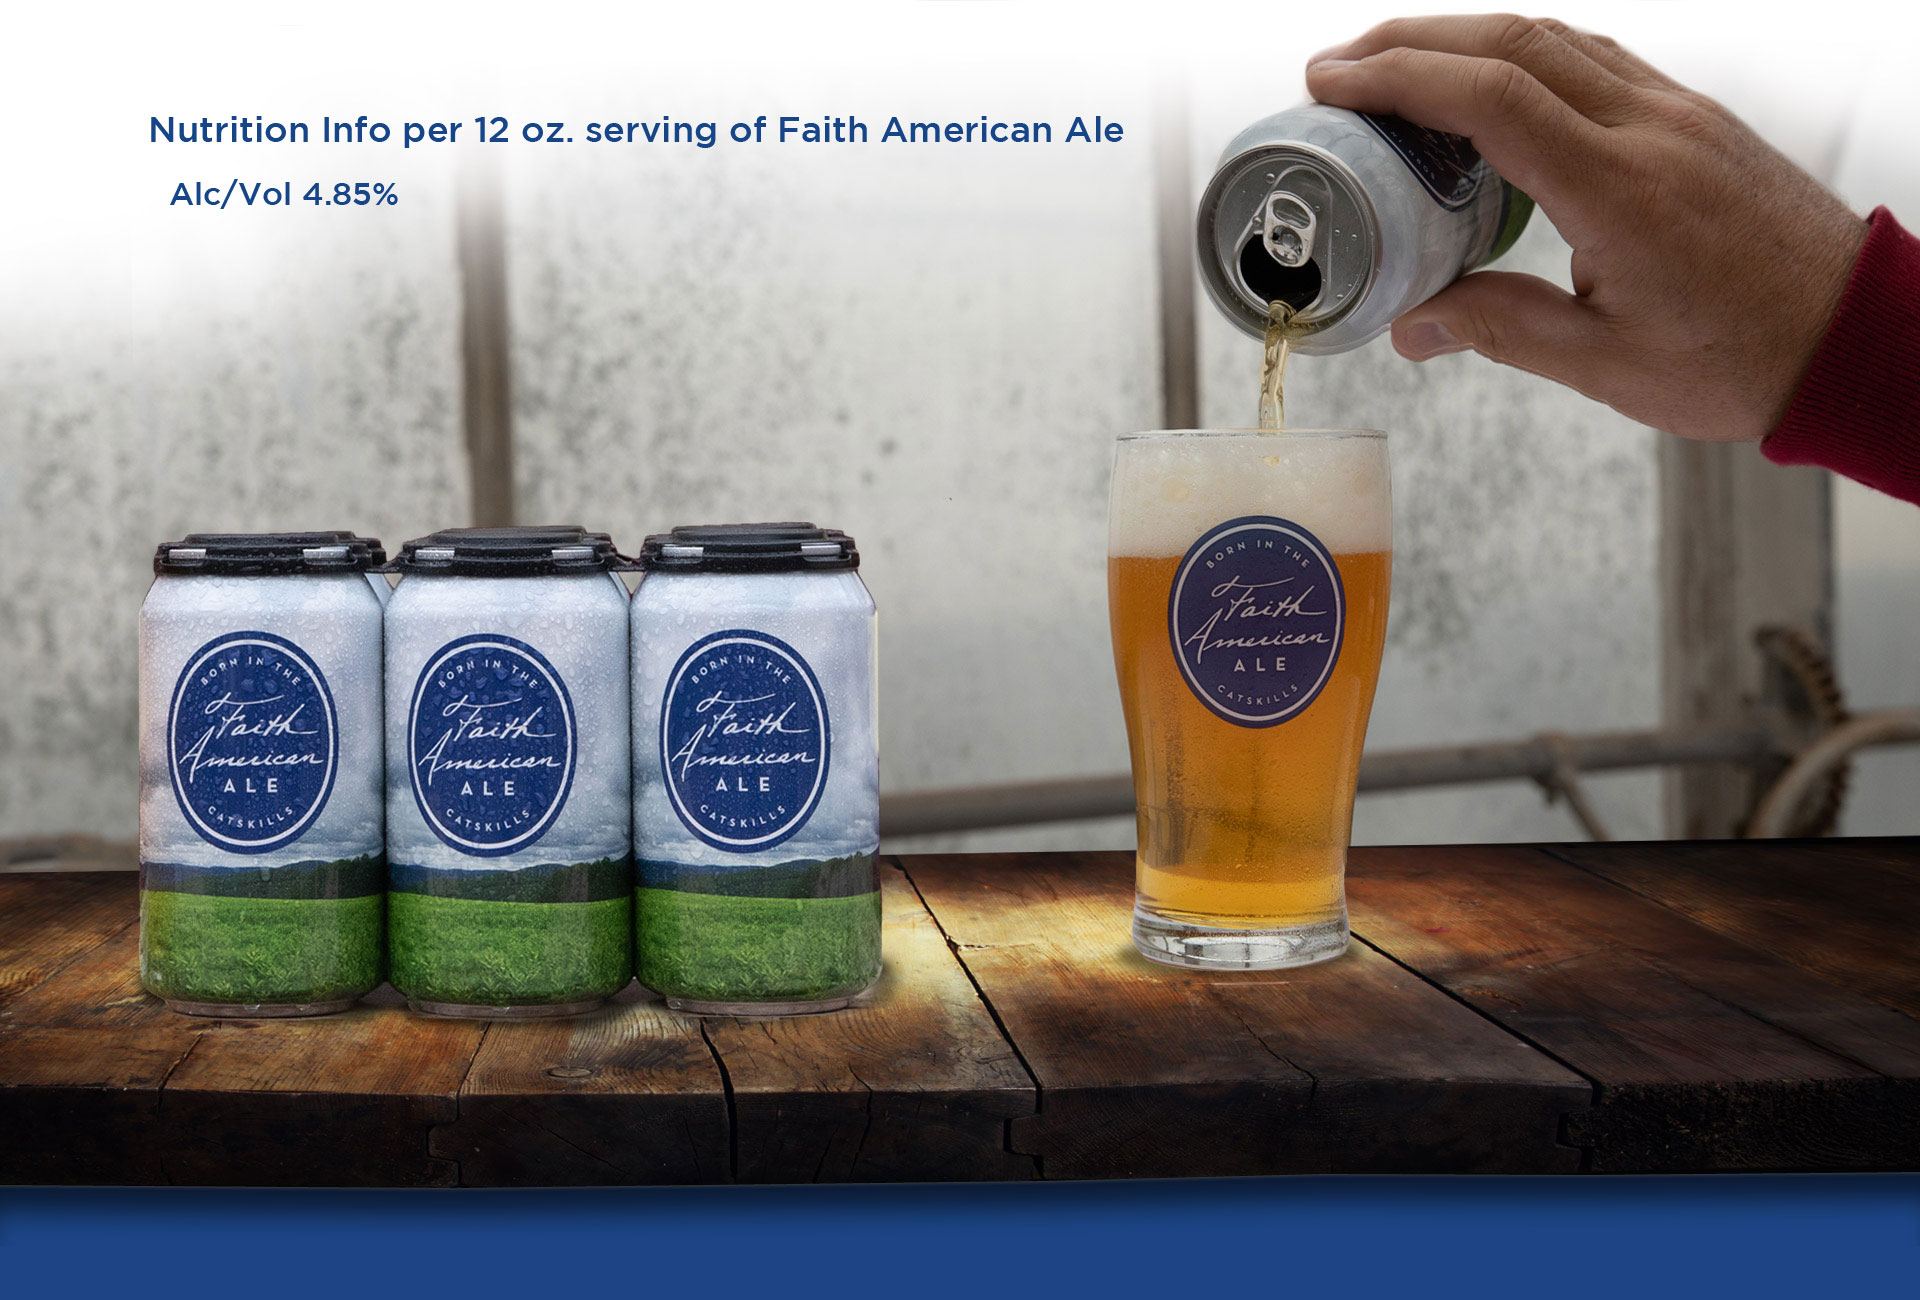 pouring Faith American Ale into glass with 6 pack of cans next to it